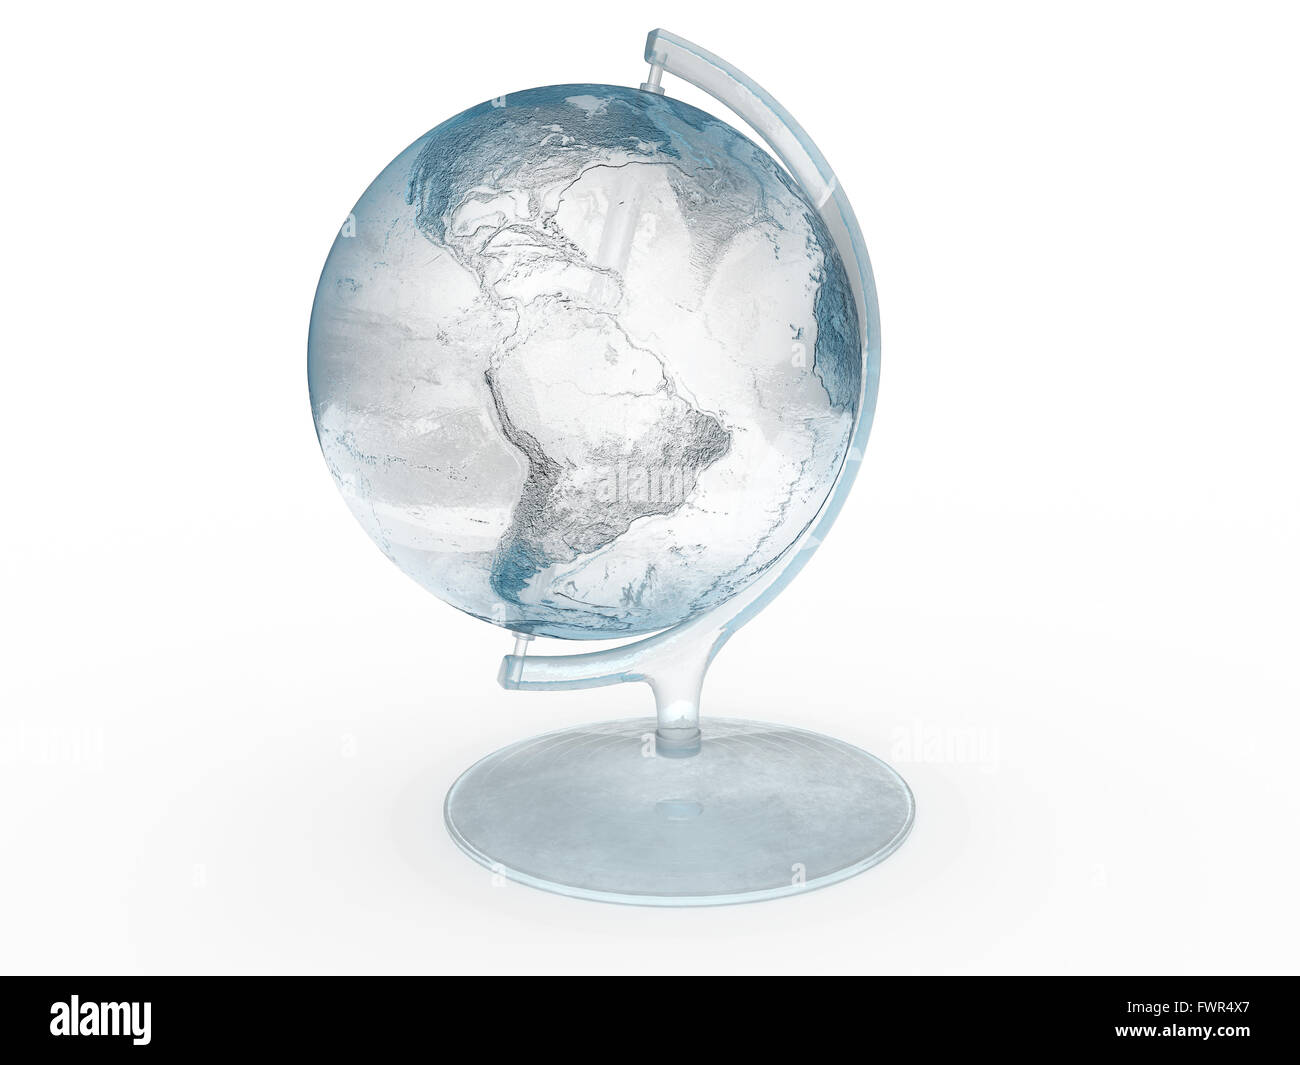 Globe made of ice isolated on a white background.   - Elements of this image furnished by NASA - - Stock Image